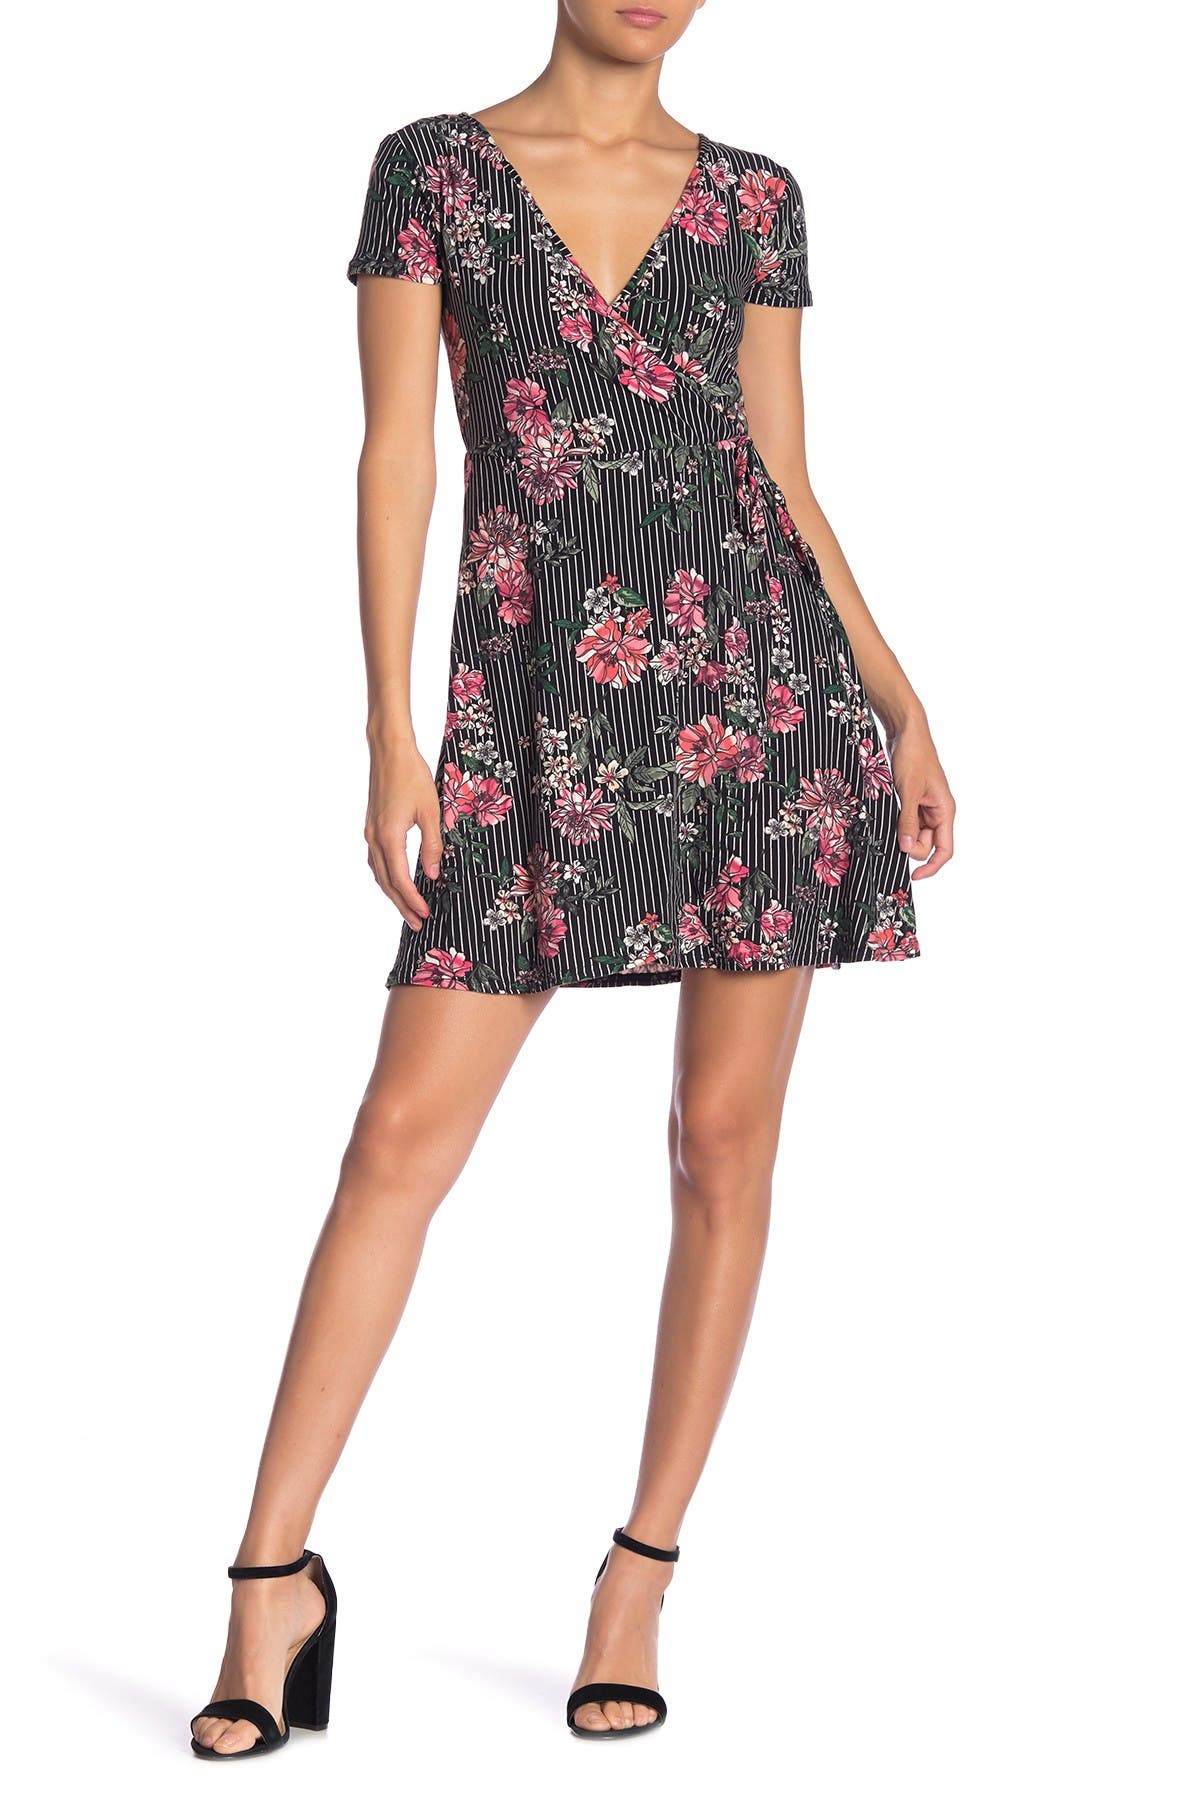 Image of PLANET GOLD Bambis Yummy Short Sleeve Dress